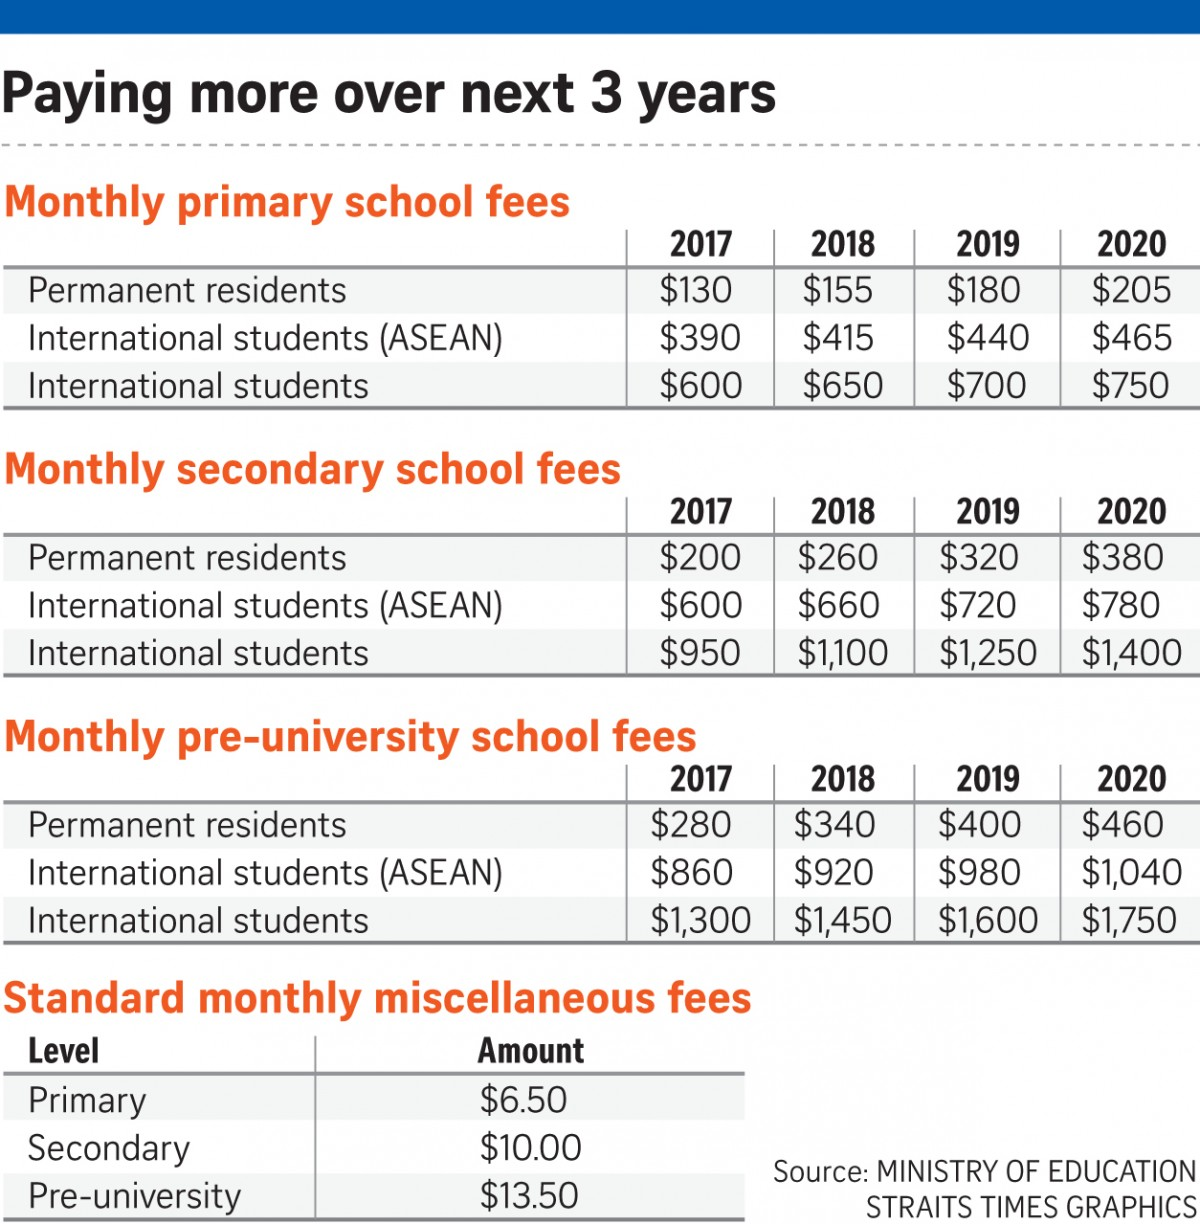 171018 Paying more over next 3 years, School fee hike for PRs an